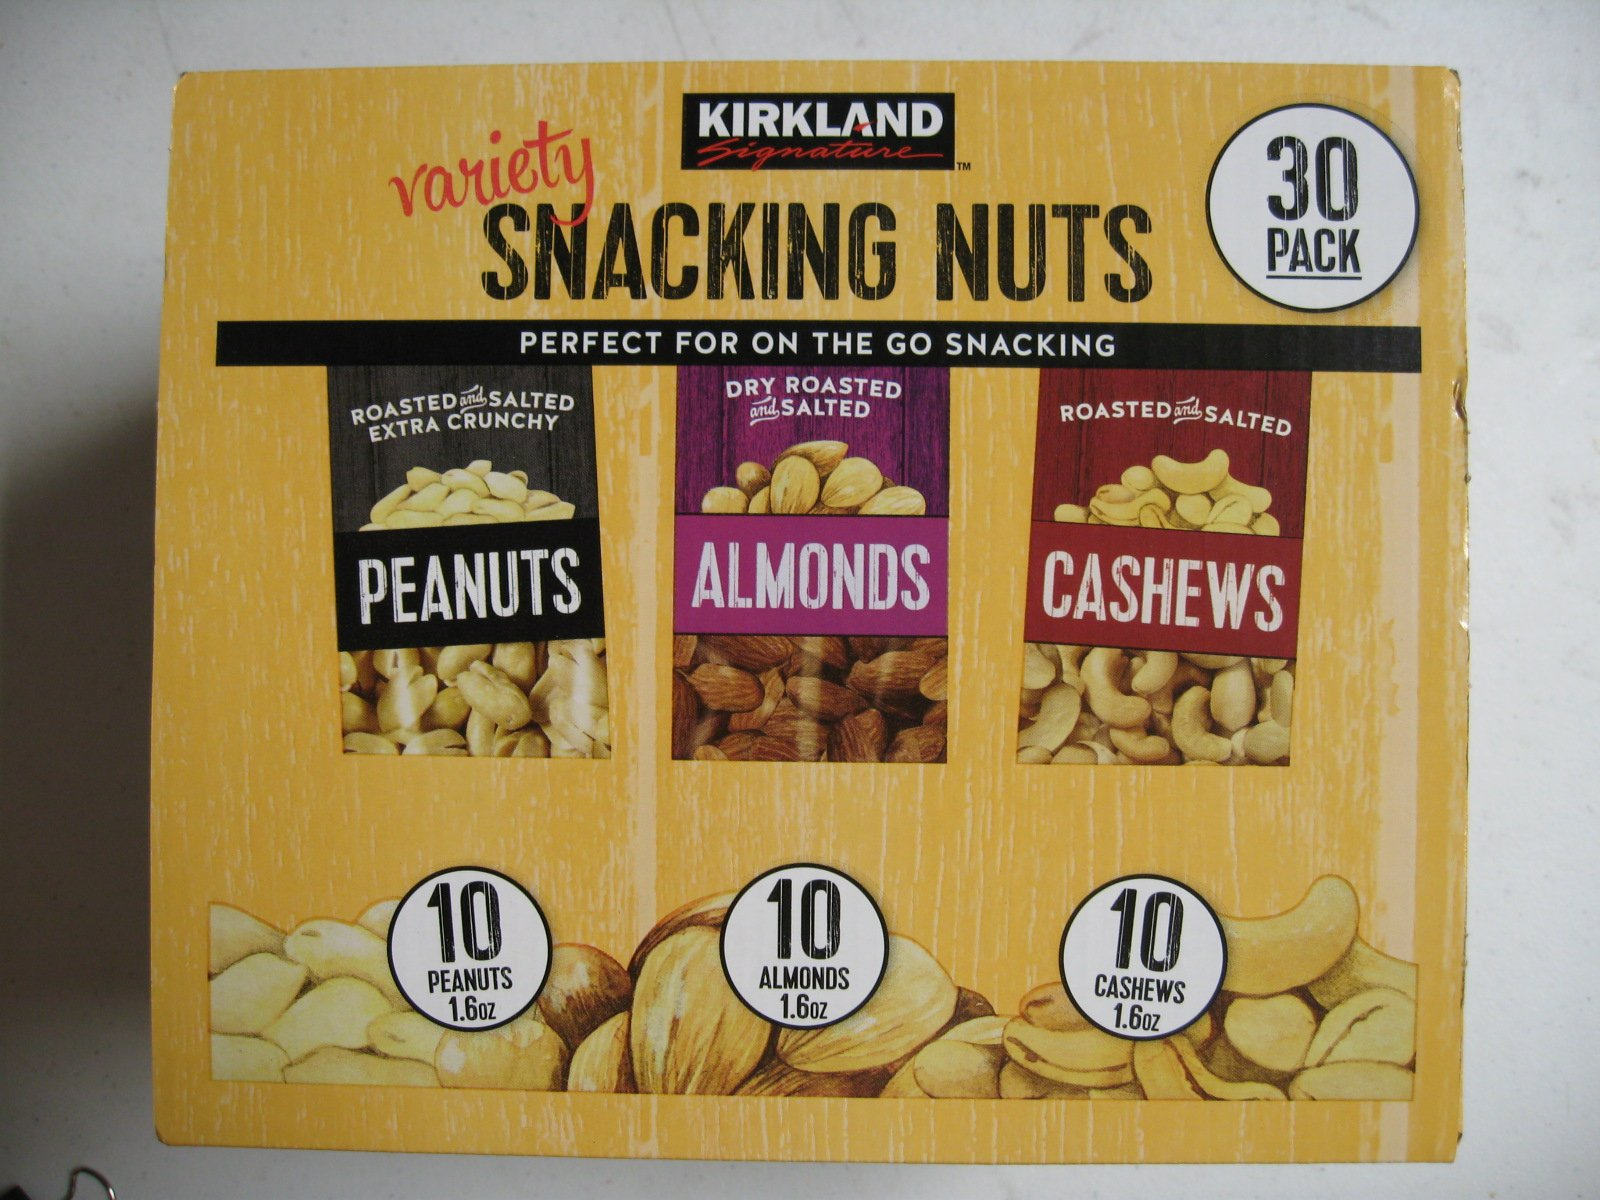 Signature Snacking Nuts 30 Pack (One Pack 1.6 Oz) Box